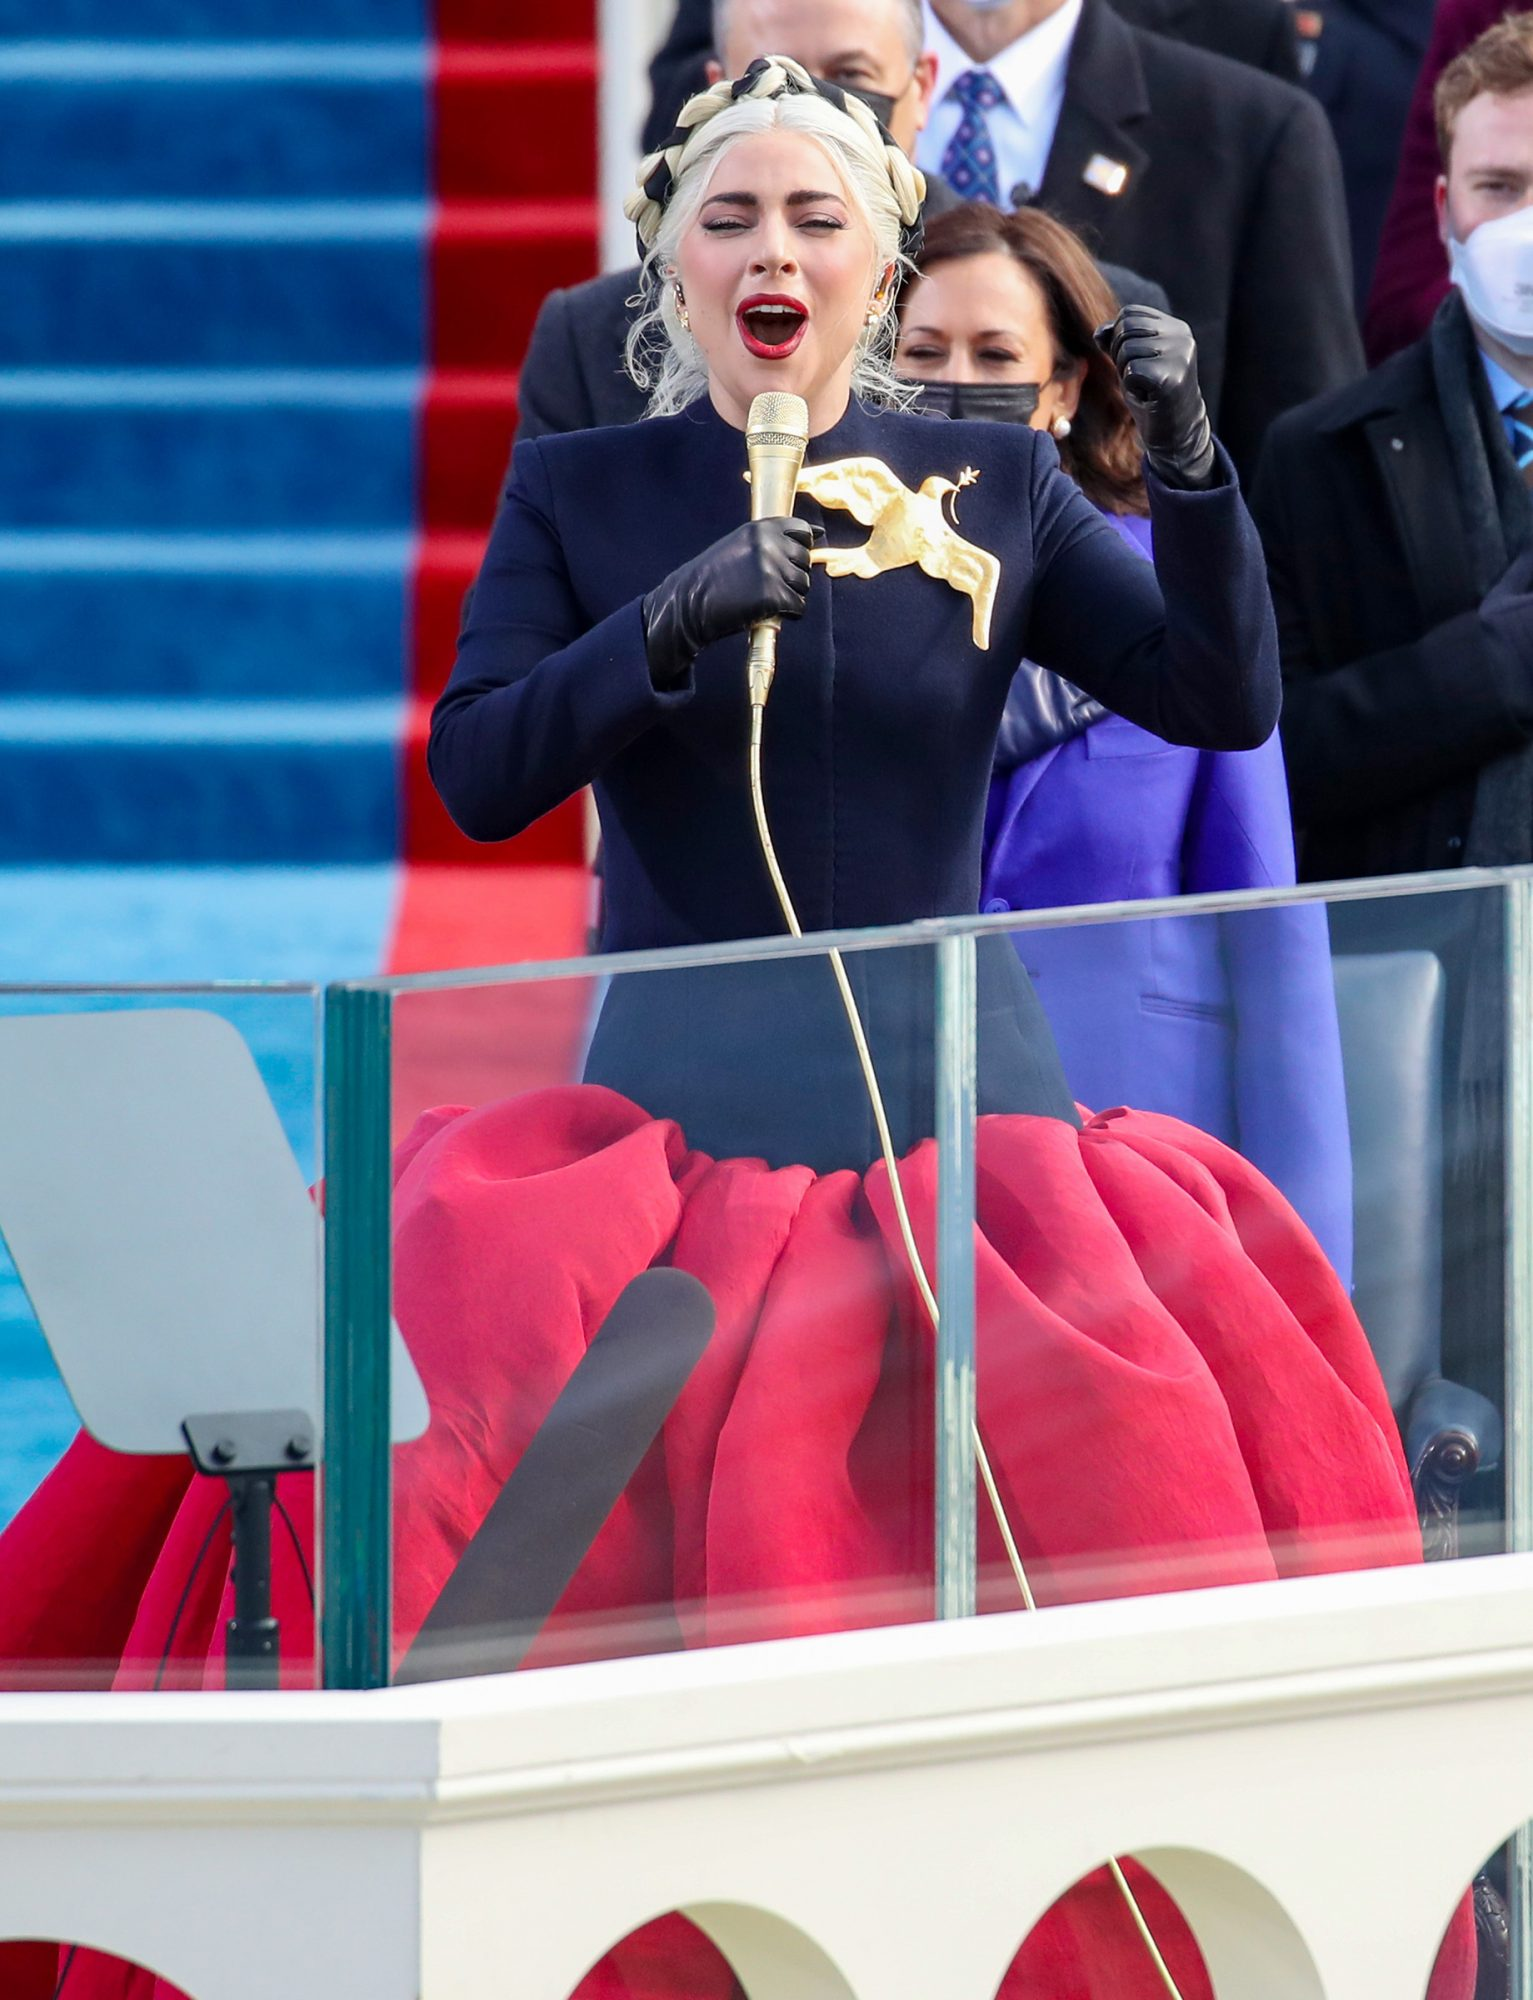 Lady Gaga sings the National Anthem at the inauguration of U.S. President-elect Joe Biden on the West Front of the U.S. Capitol on January 20, 2021 in Washington, DC